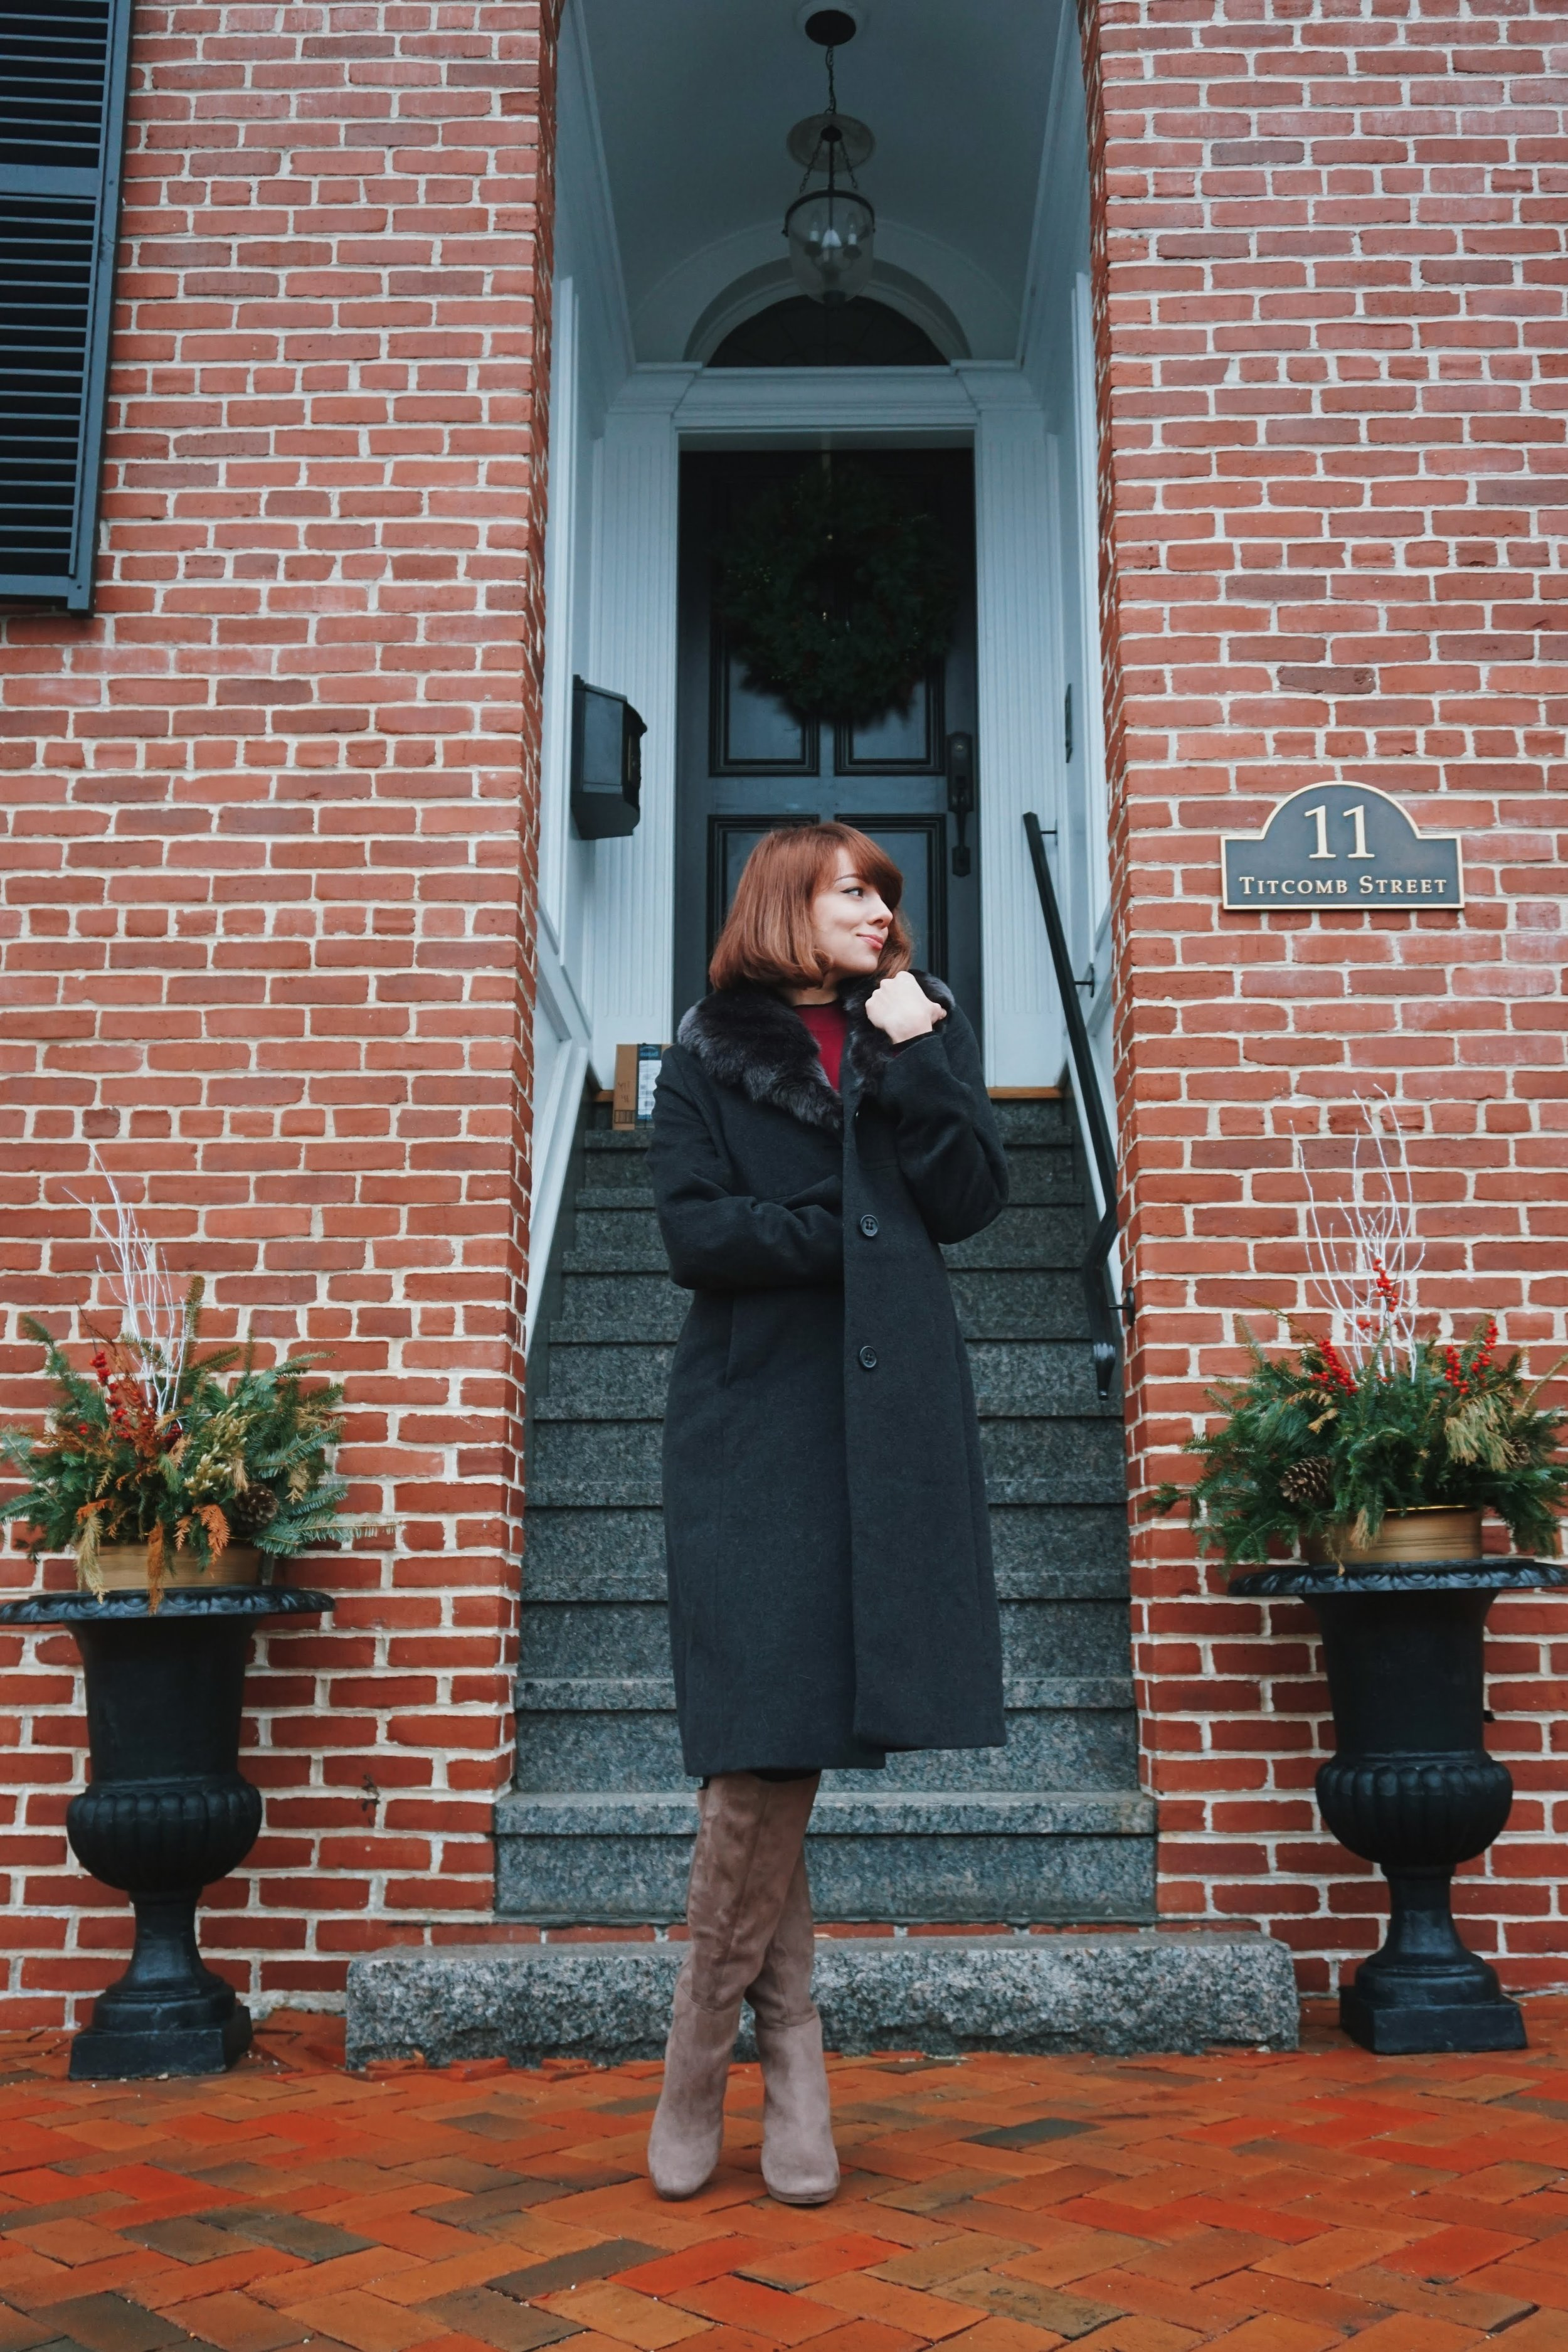 A blogger posing next to a red brick building, wearing a gray coat, light brown boots, and maroon colour dress.